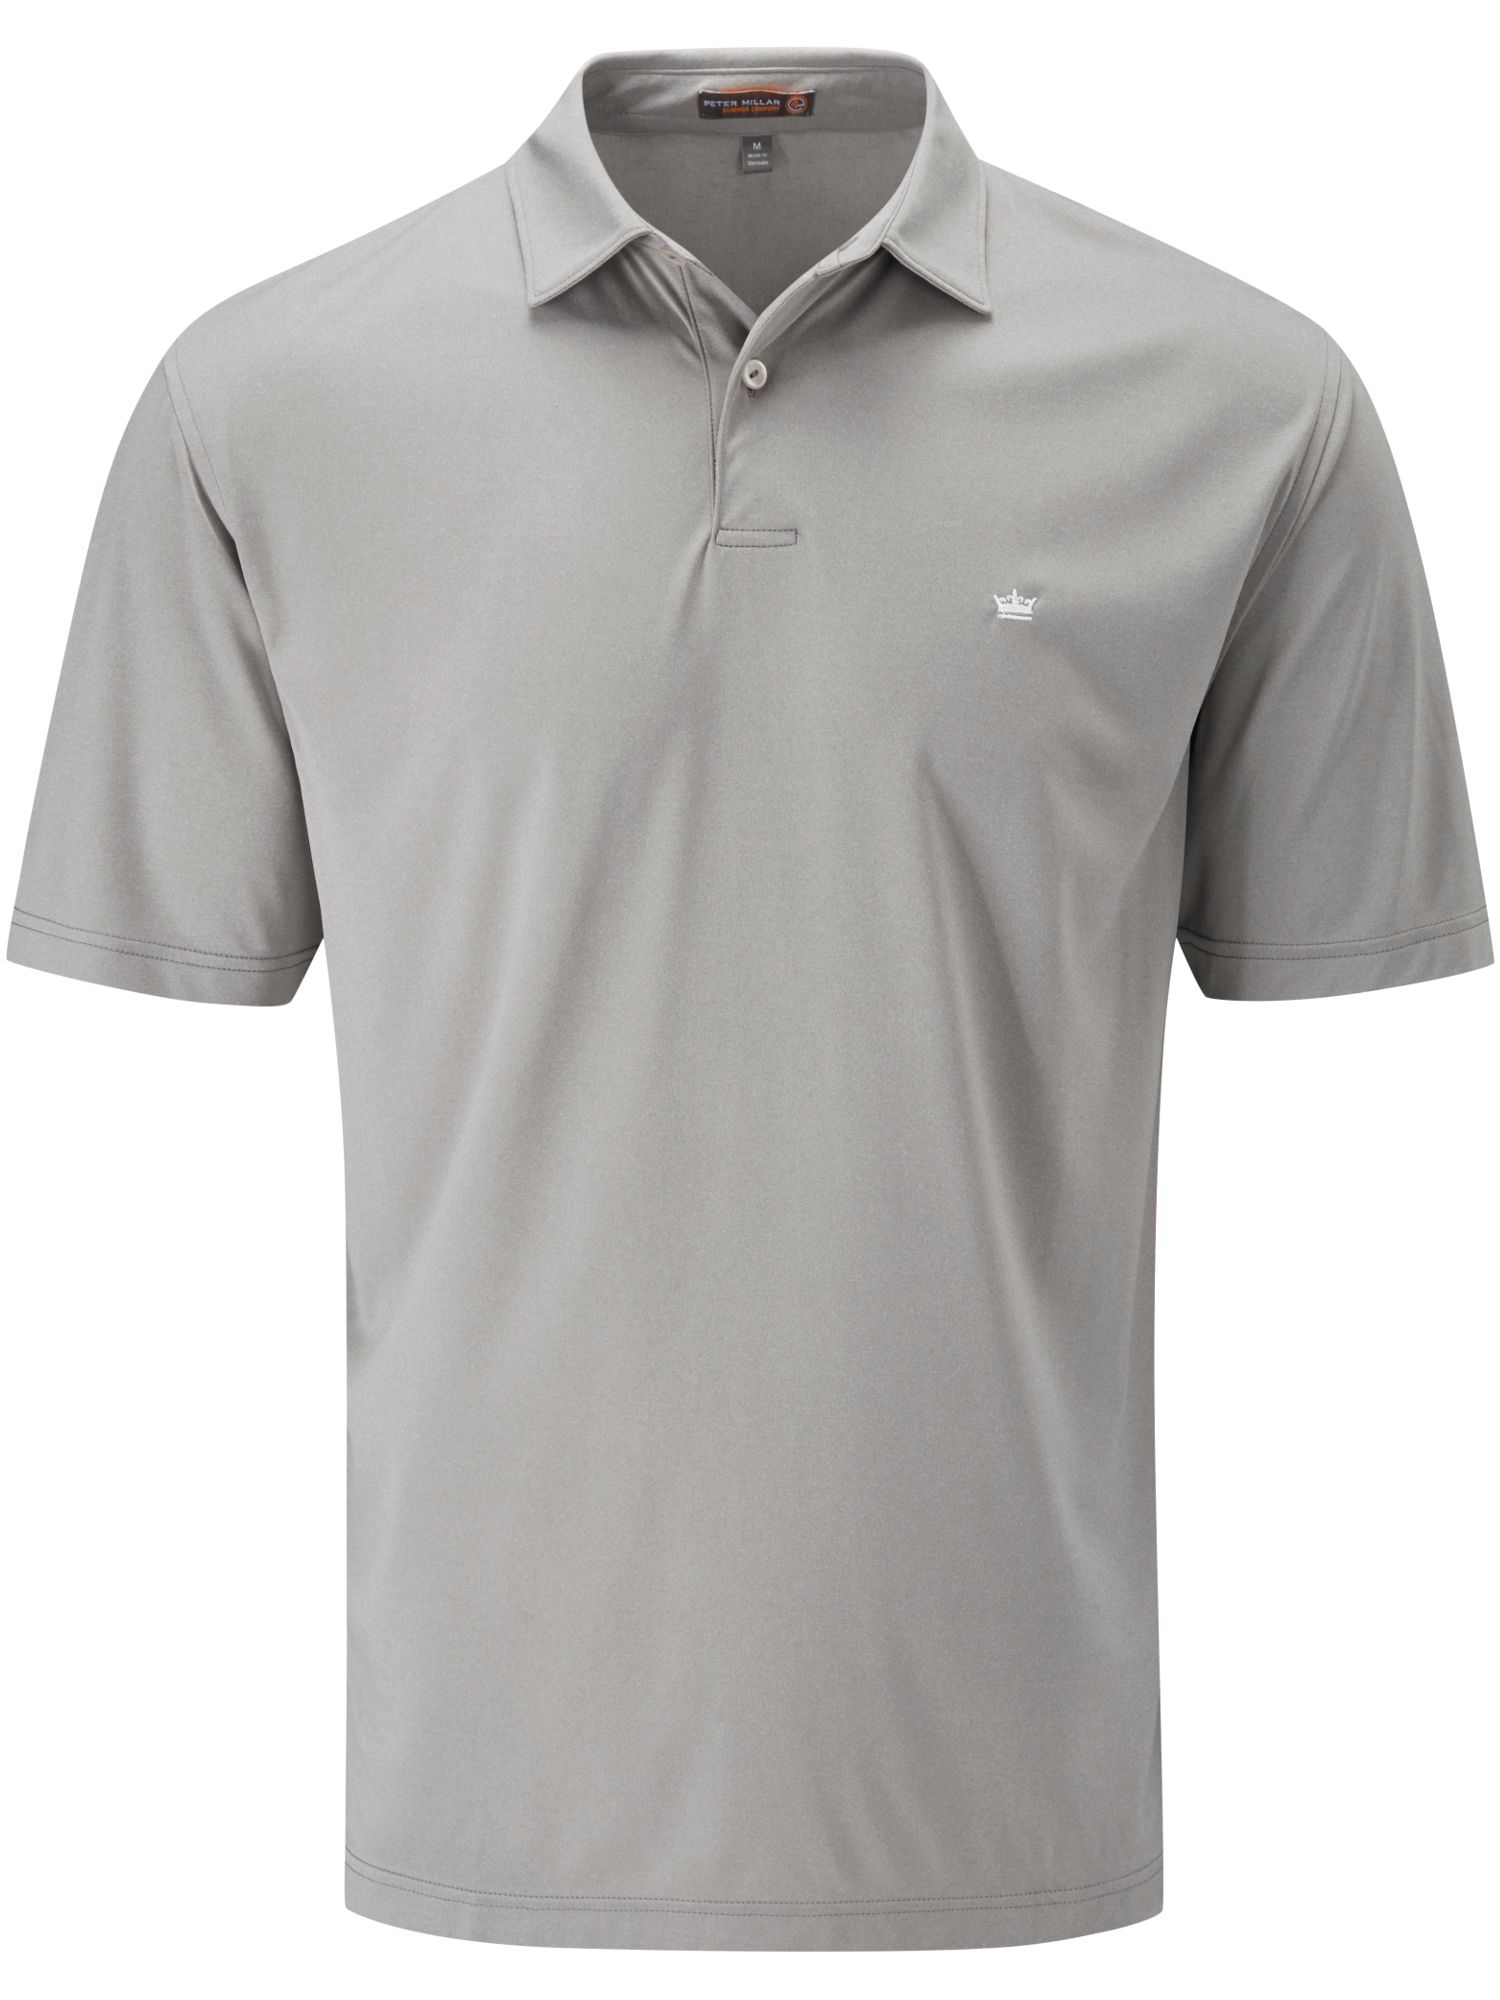 Peter millar featherweight polo in gray for men lyst for Peter millar polo shirts